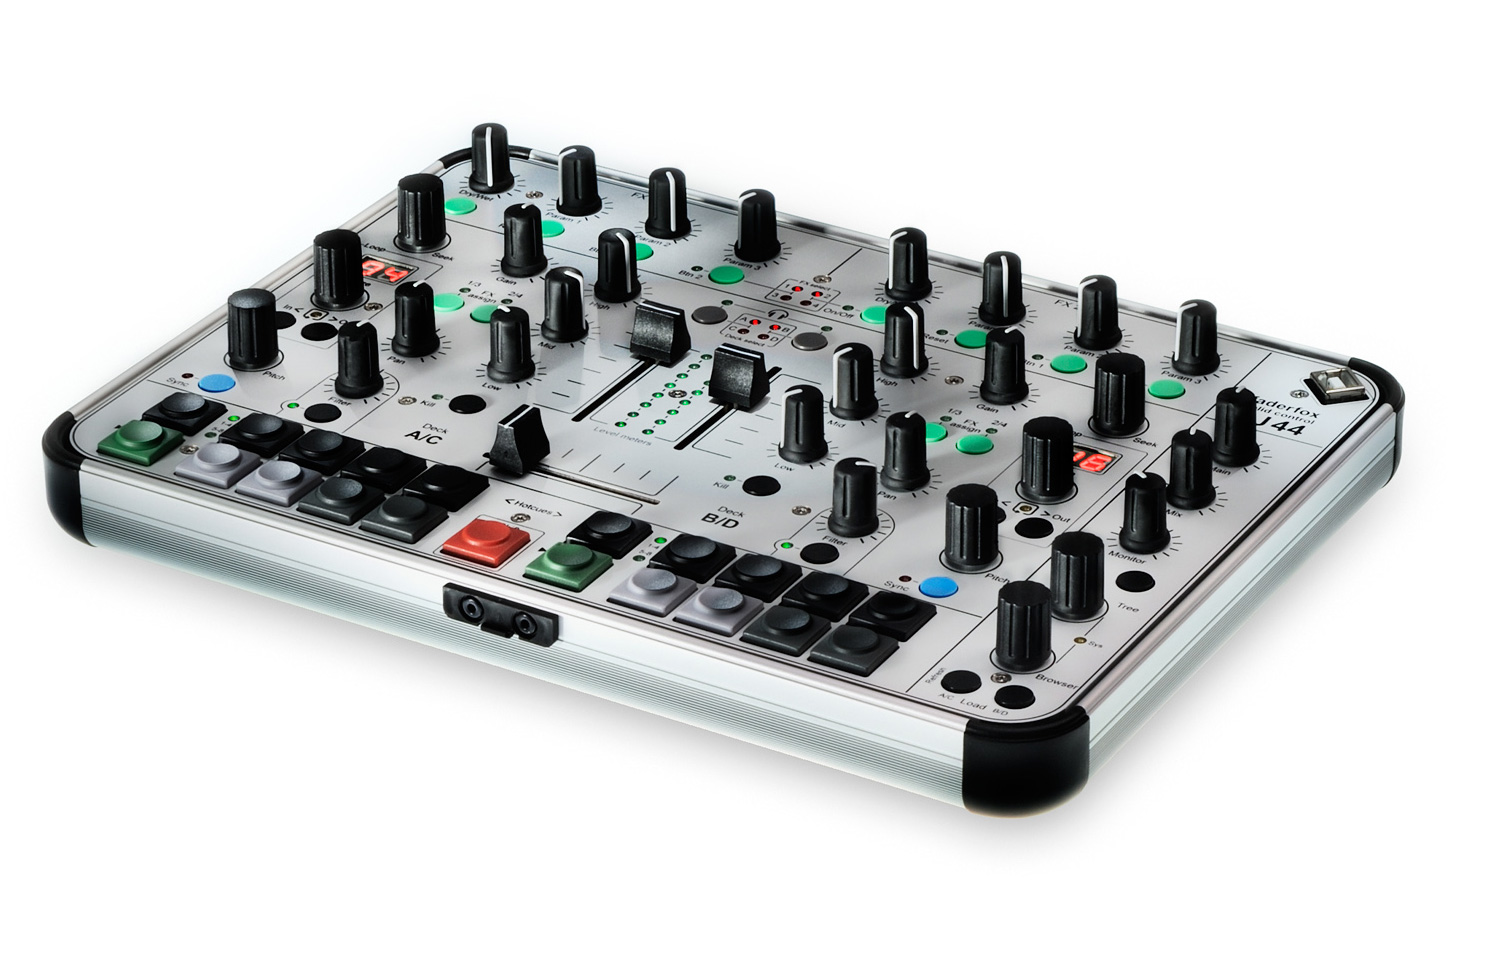 faderfox dj44 midi controller for traktor news audiofanzine. Black Bedroom Furniture Sets. Home Design Ideas